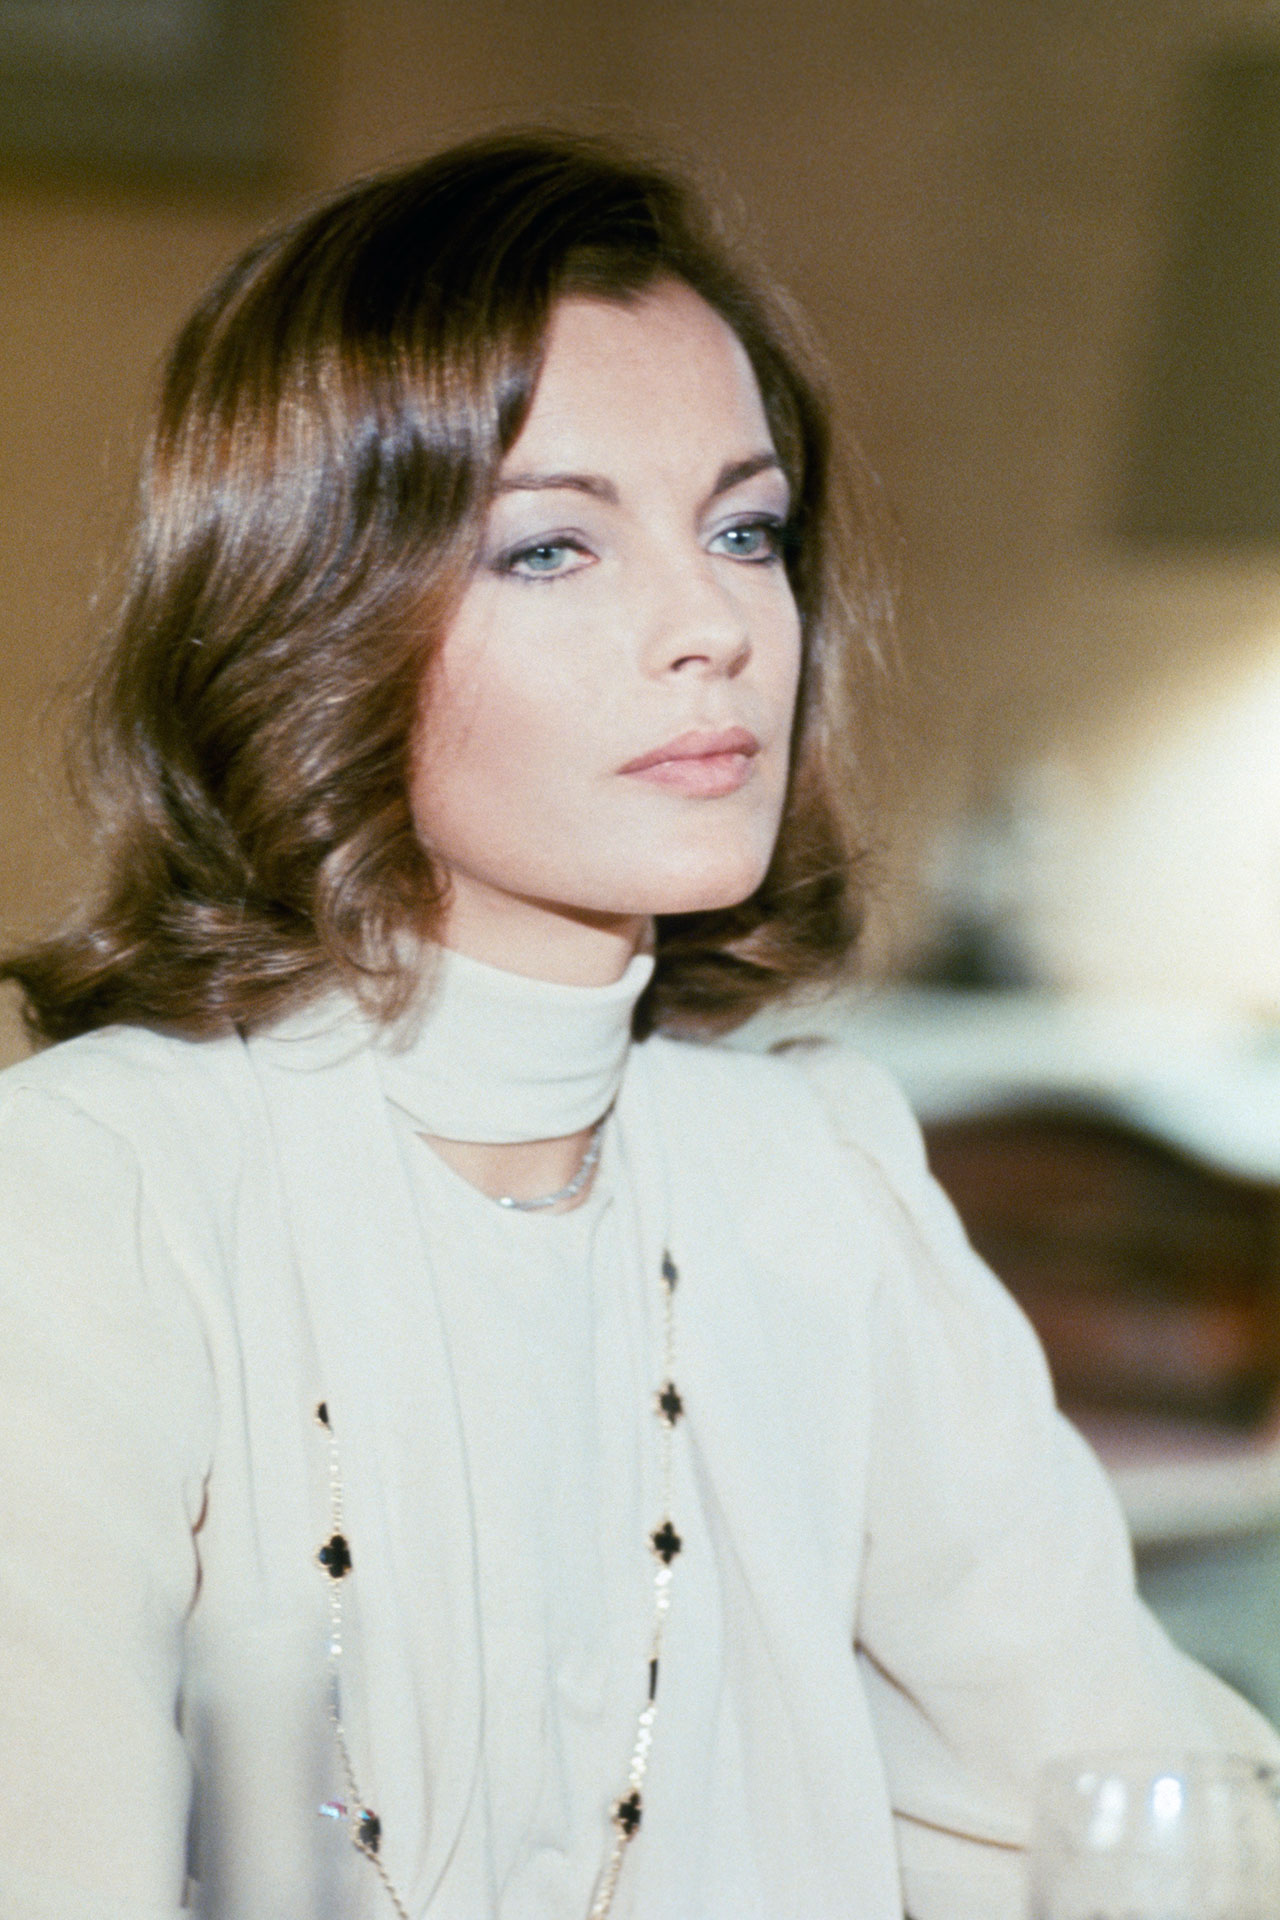 Actress Romy Schneider in 'Love at the Top', film by Michel Deville, 1974. Photo © Leonard de Raemy / Sygma / Getty Images.